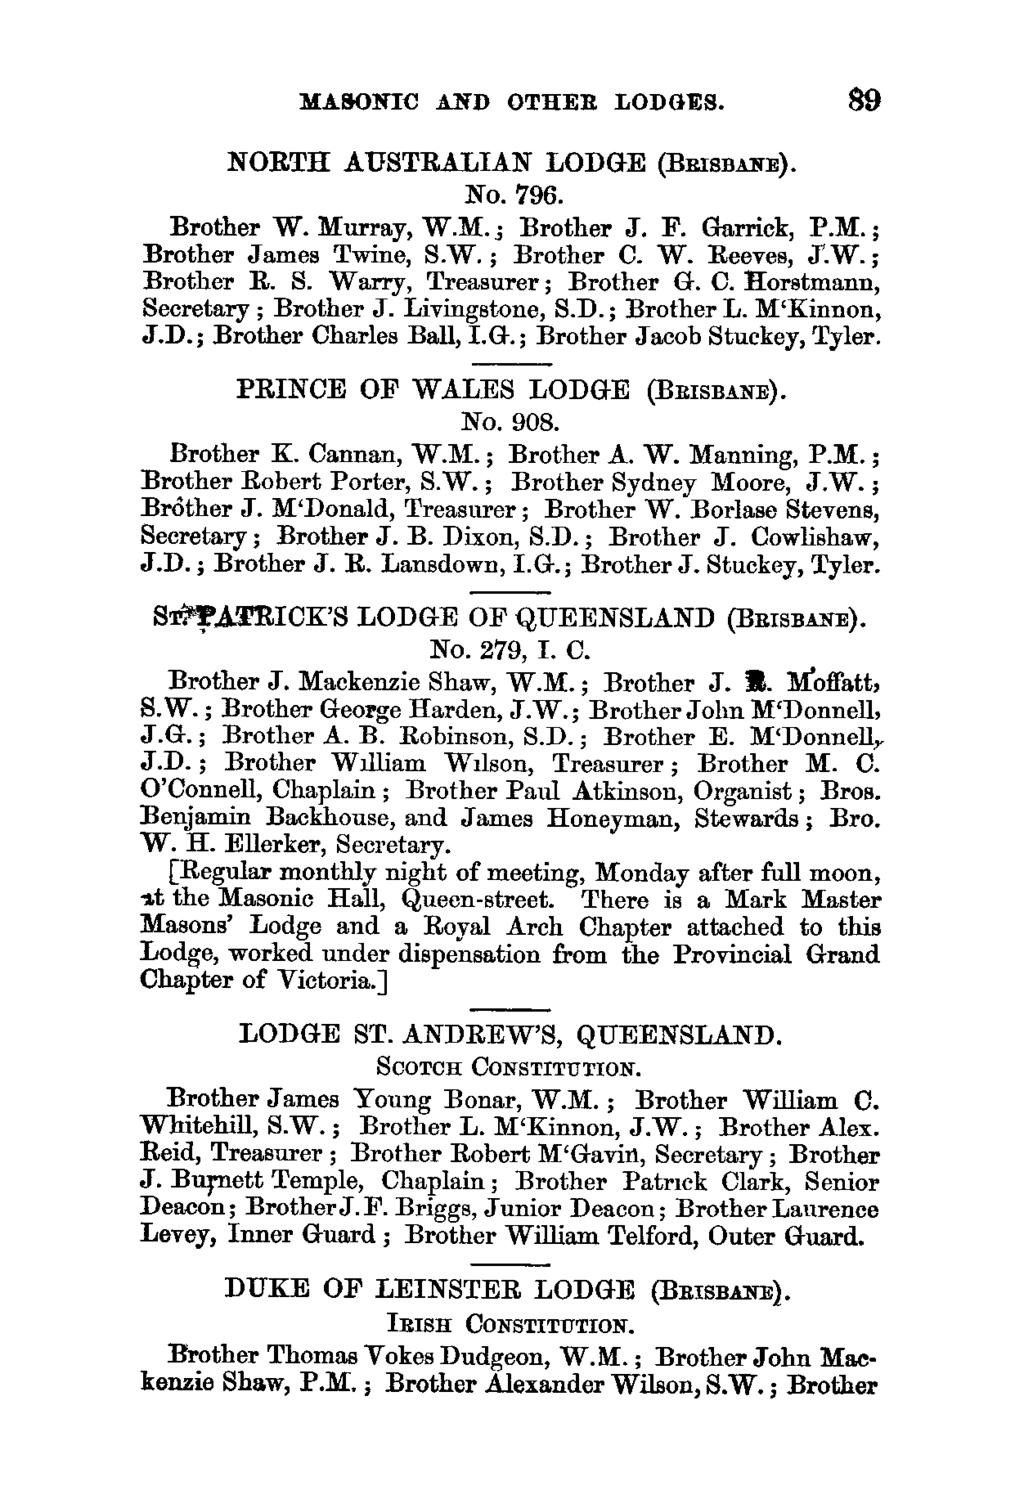 MASONIC AND OTHER LODGES. 89 NORTH AUSTRALIAN LODGE (BRISBANE). No. 796. Brother W. Murray, W.M.; Brother J. F. Garrick, P.M.; Brother James Twine, S.W.; Brother C. W. Reeves, J.W. ; Brother R. S. Warry, Treasurer ; Brother G.